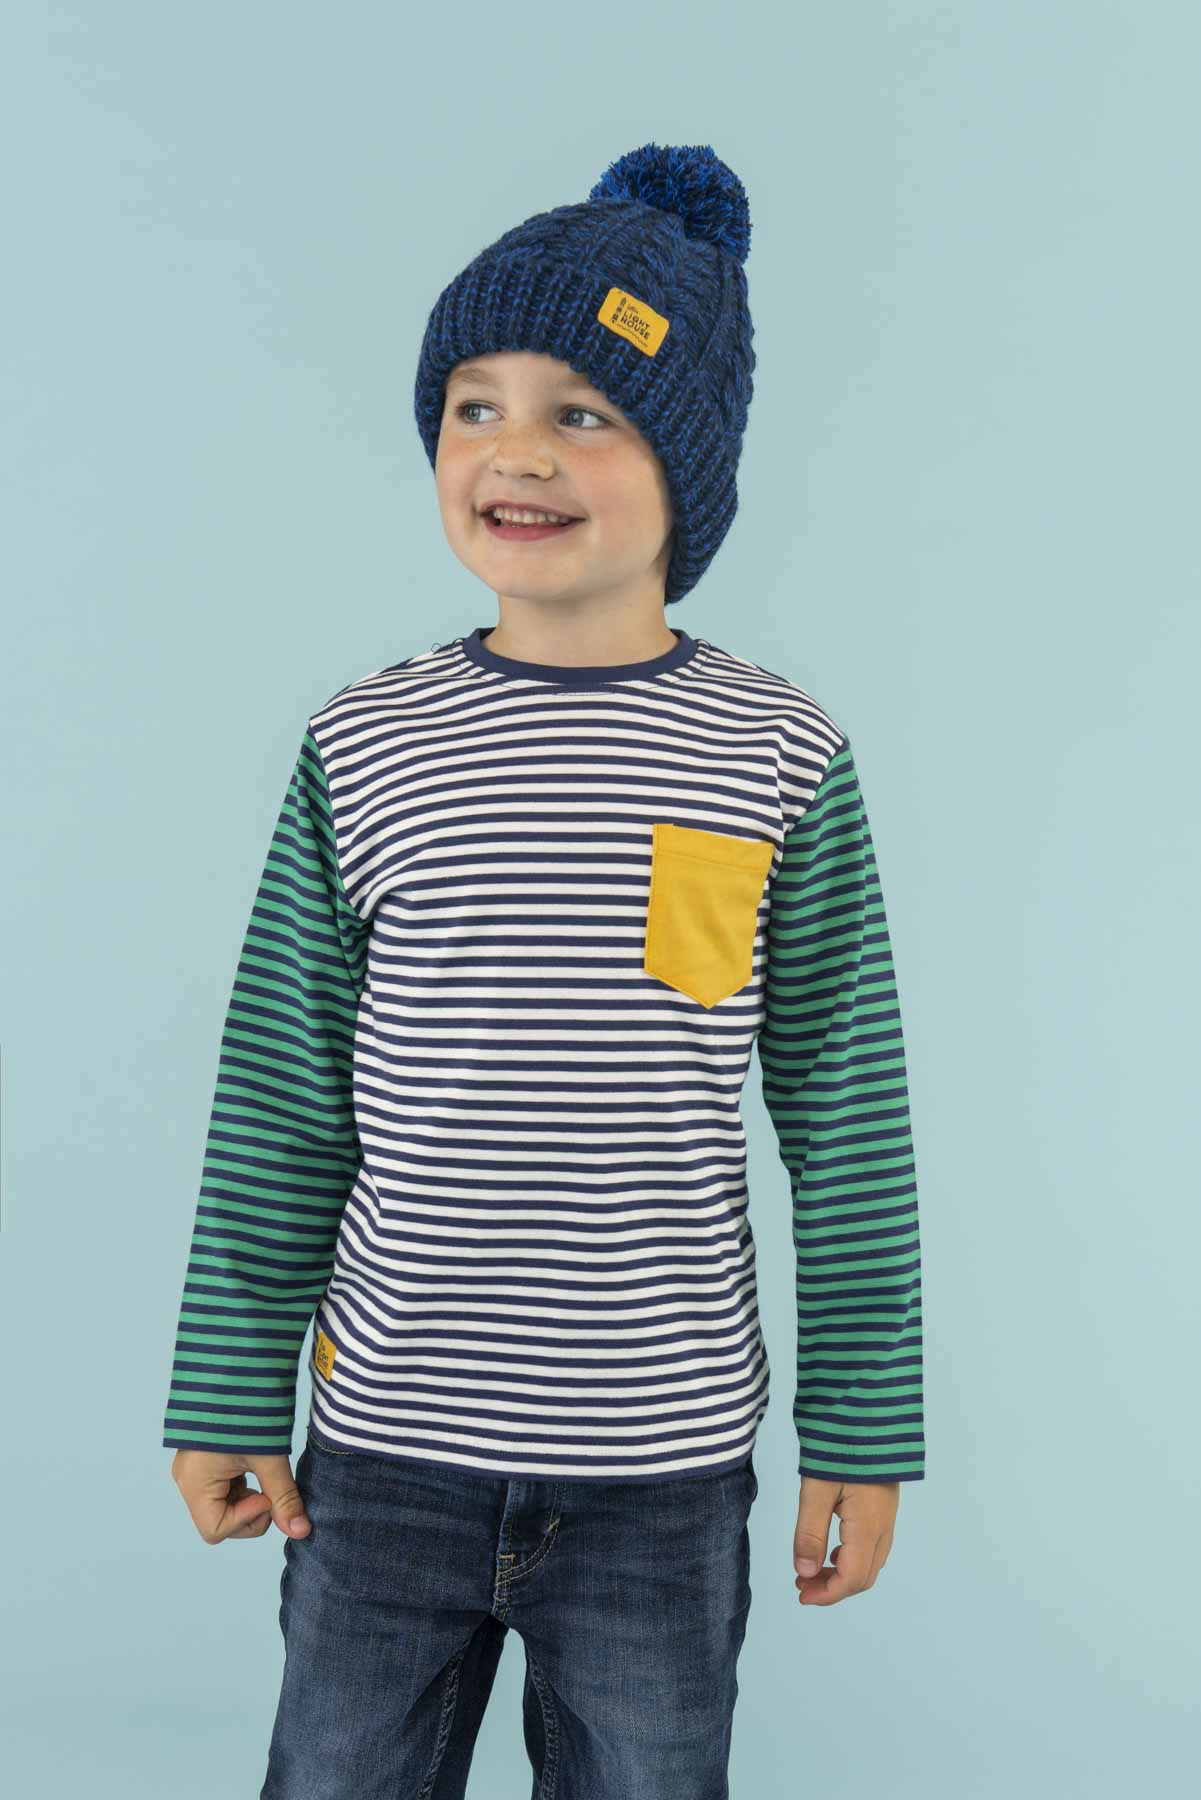 Bobbie Bobble Hat - Navy, Boy's Cable Knit Hat | Lighthouse